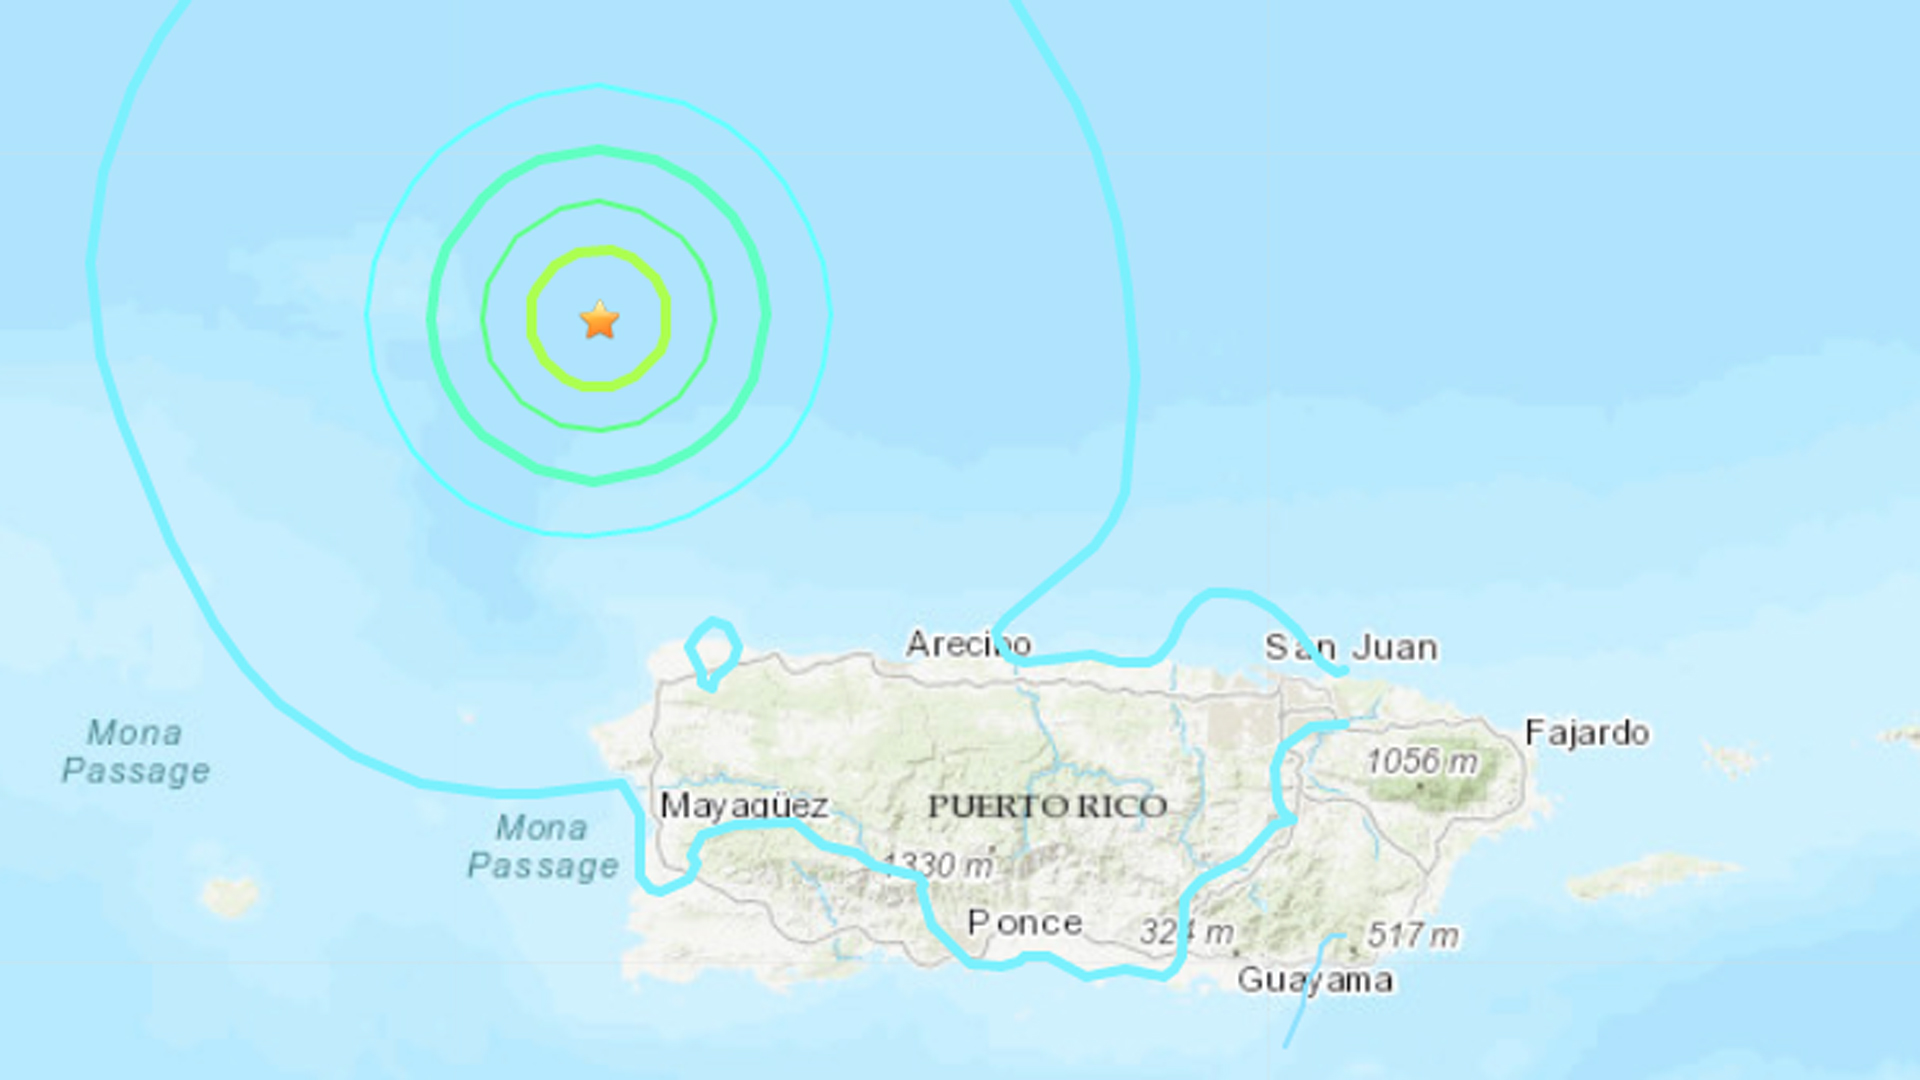 A 6.0 magnitude quake that hit off the coast of Puerto Rico is seen in a map provided by the U.S. Geological Survey.